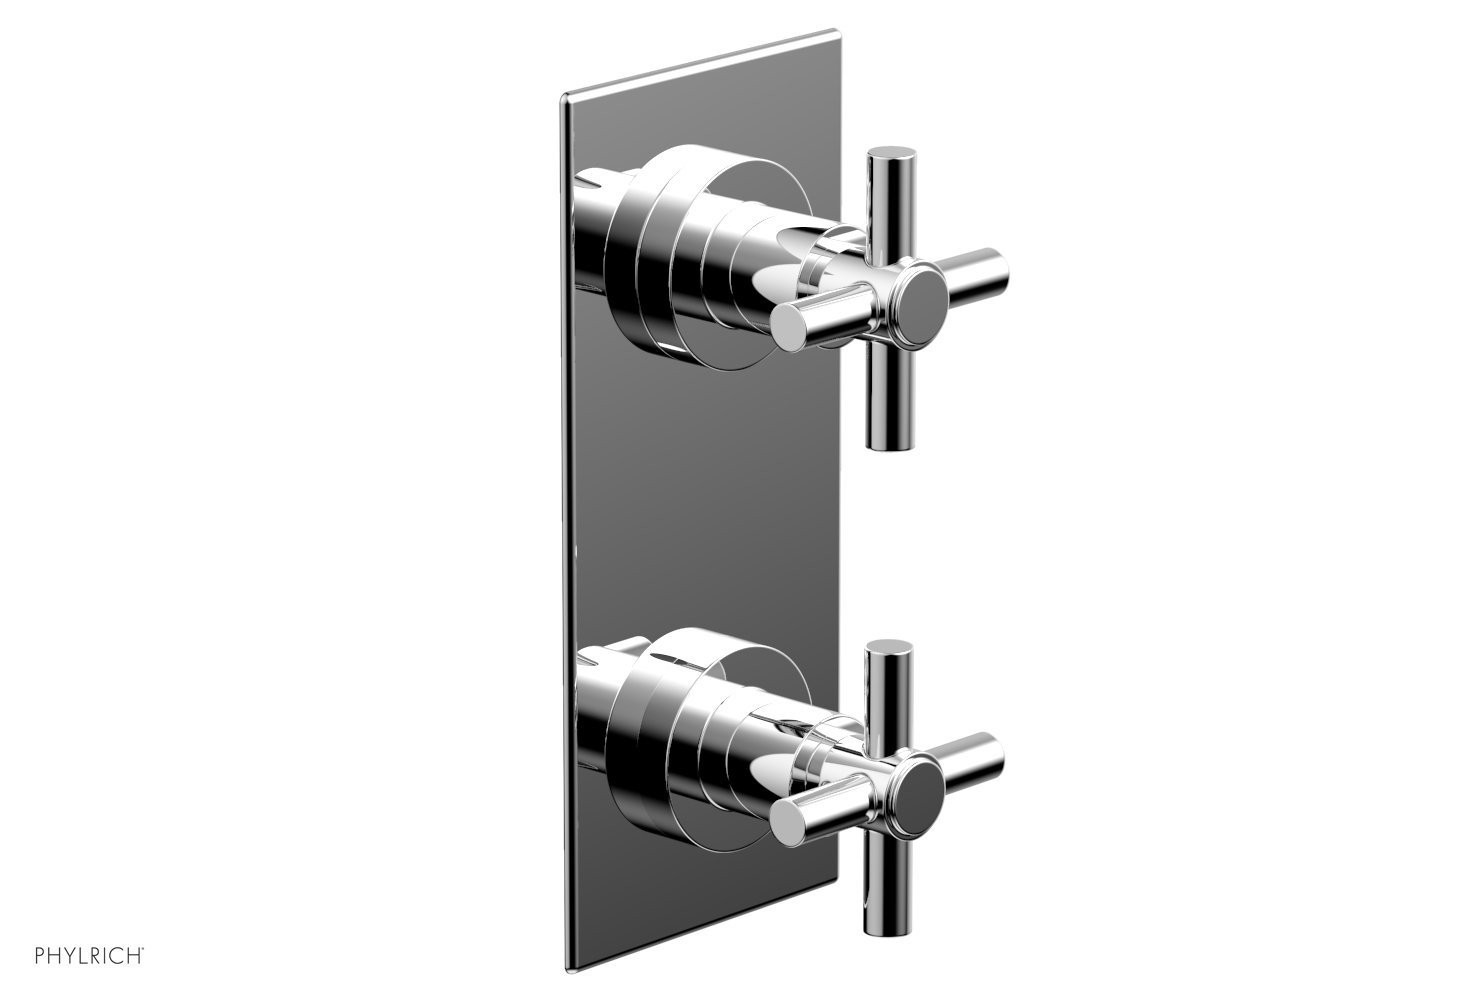 PHYLRICH 4-350 BASIC WALL MOUNT TWO TUBULAR CROSS HANDLES MINI THERMOSTATIC VALVE WITH VOLUME CONTROL OR DIVERTER TRIM